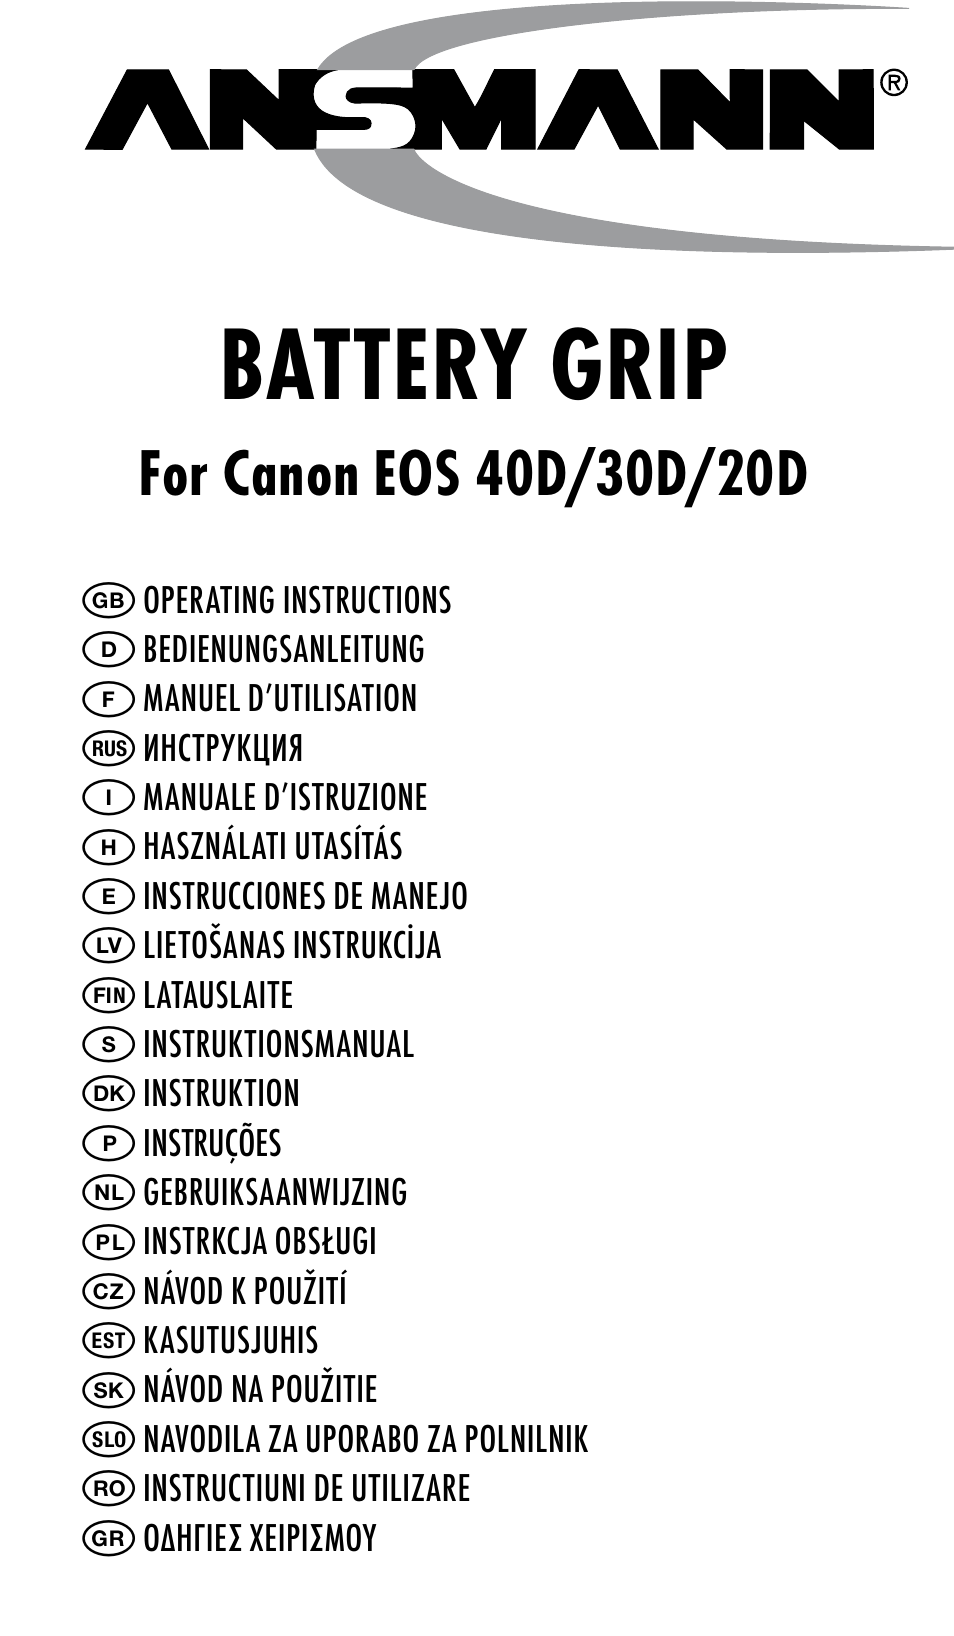 Ansmann Energy CANON EOS 20D User Manual | 24 pages | Also